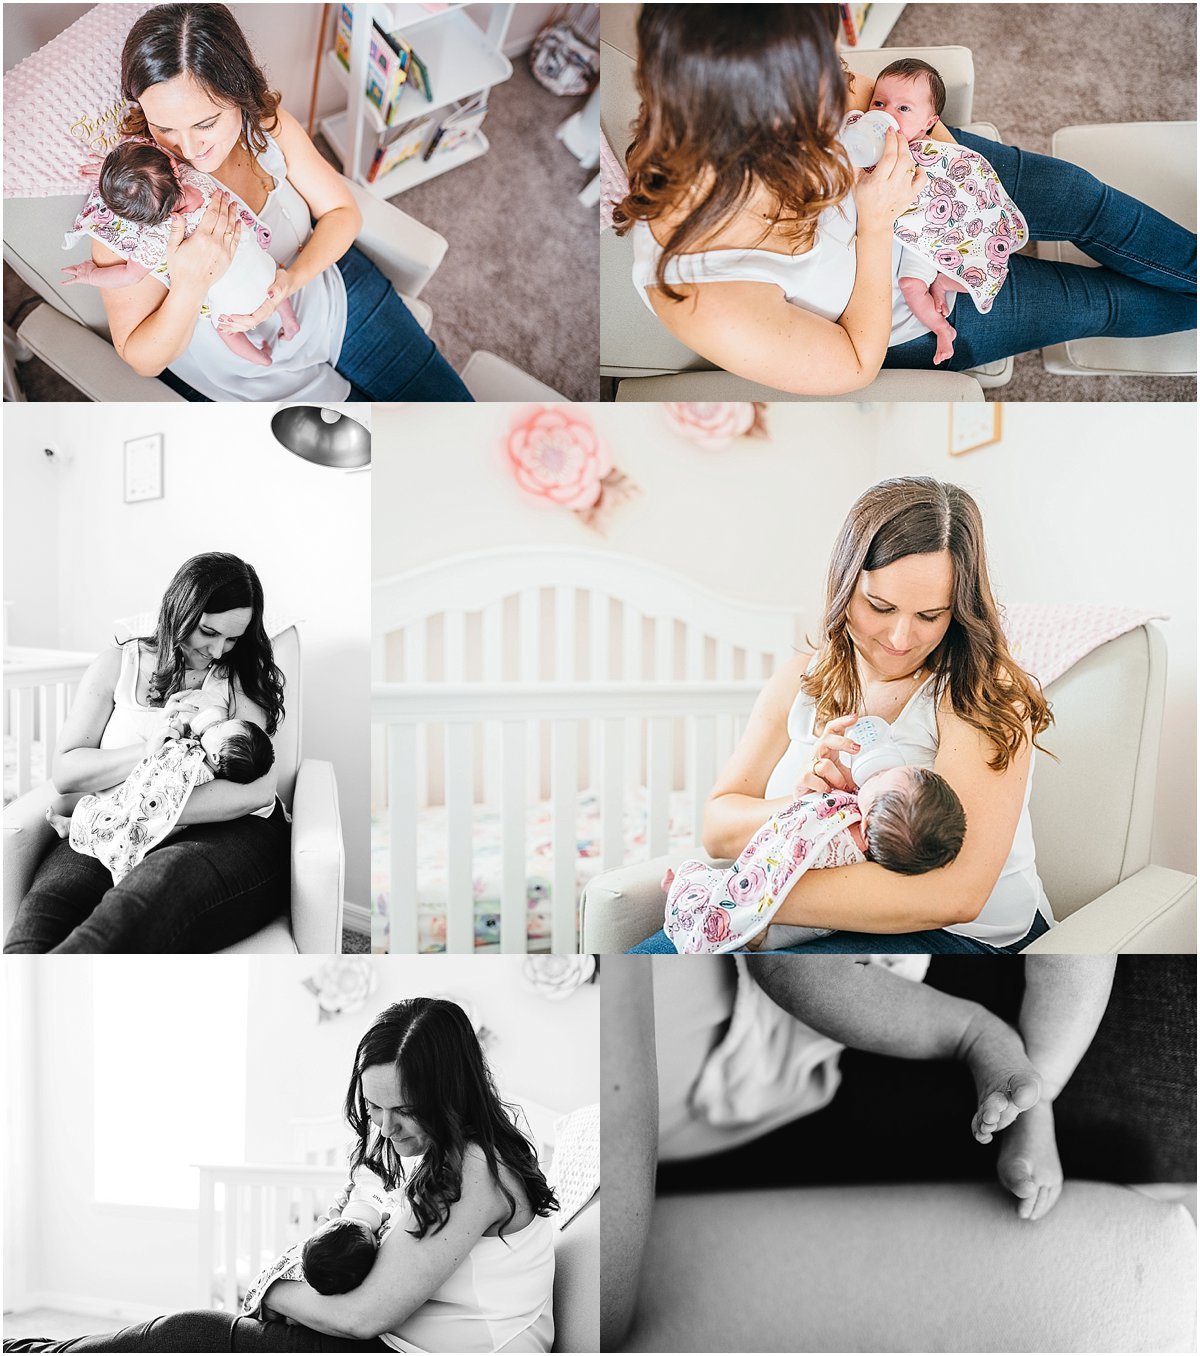 Ashley_Rogers_Photography_Orlando_Non-Posed_Newborn_Family_Lifestyle_Photographer_0880.jpg